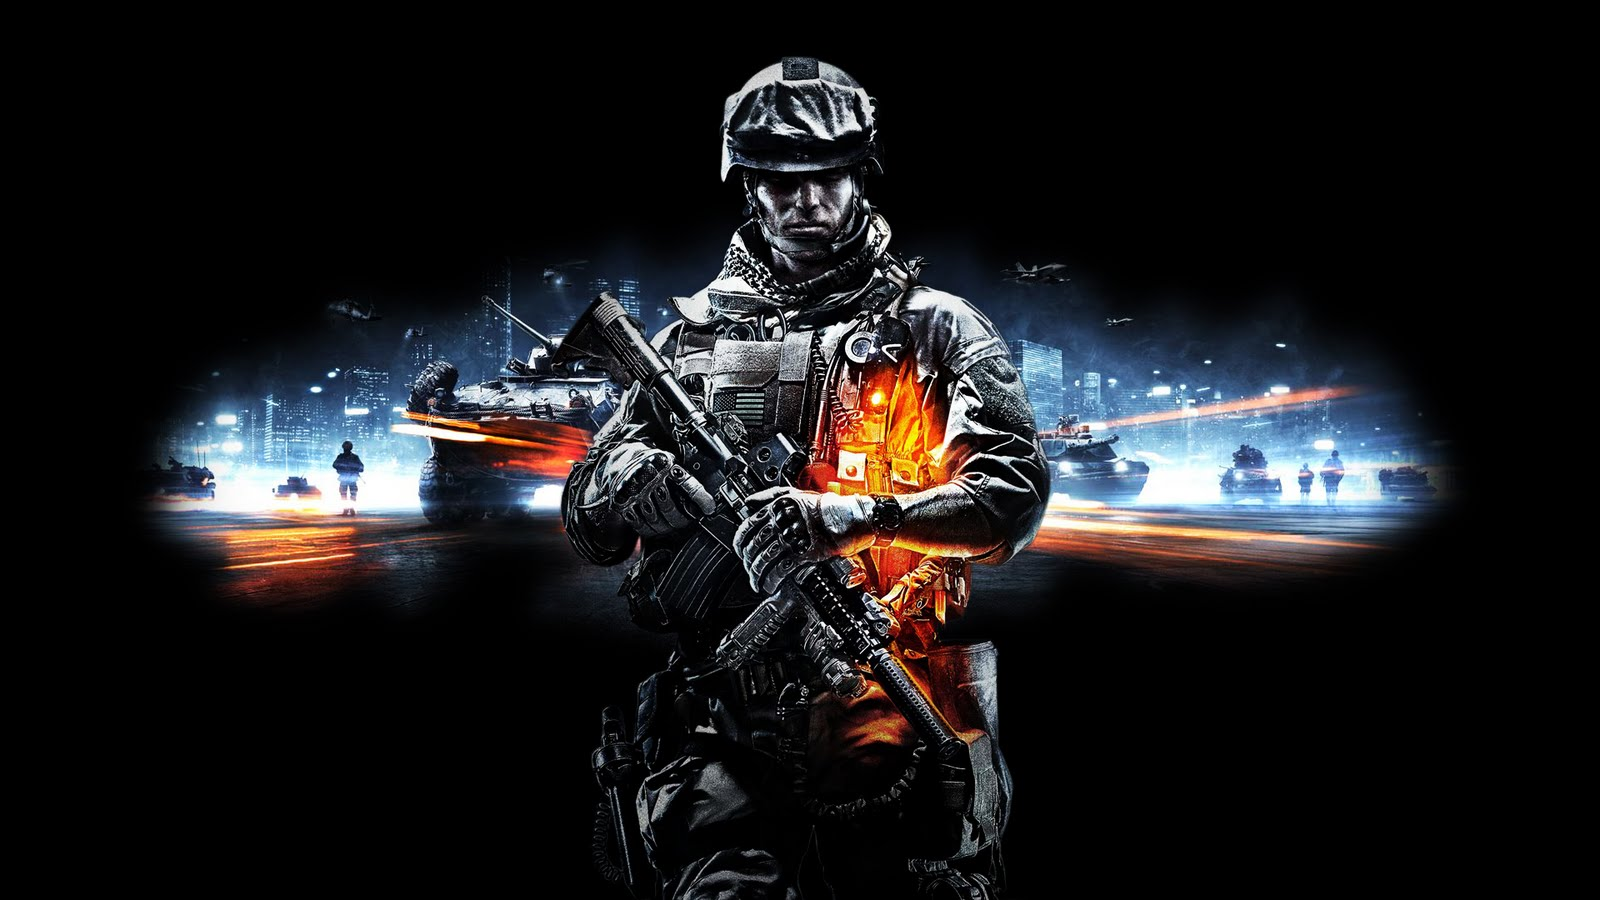 battlefield 3 hd wallpaper 1920x1080 ~ 1920x1080 wallpaper (1080p)